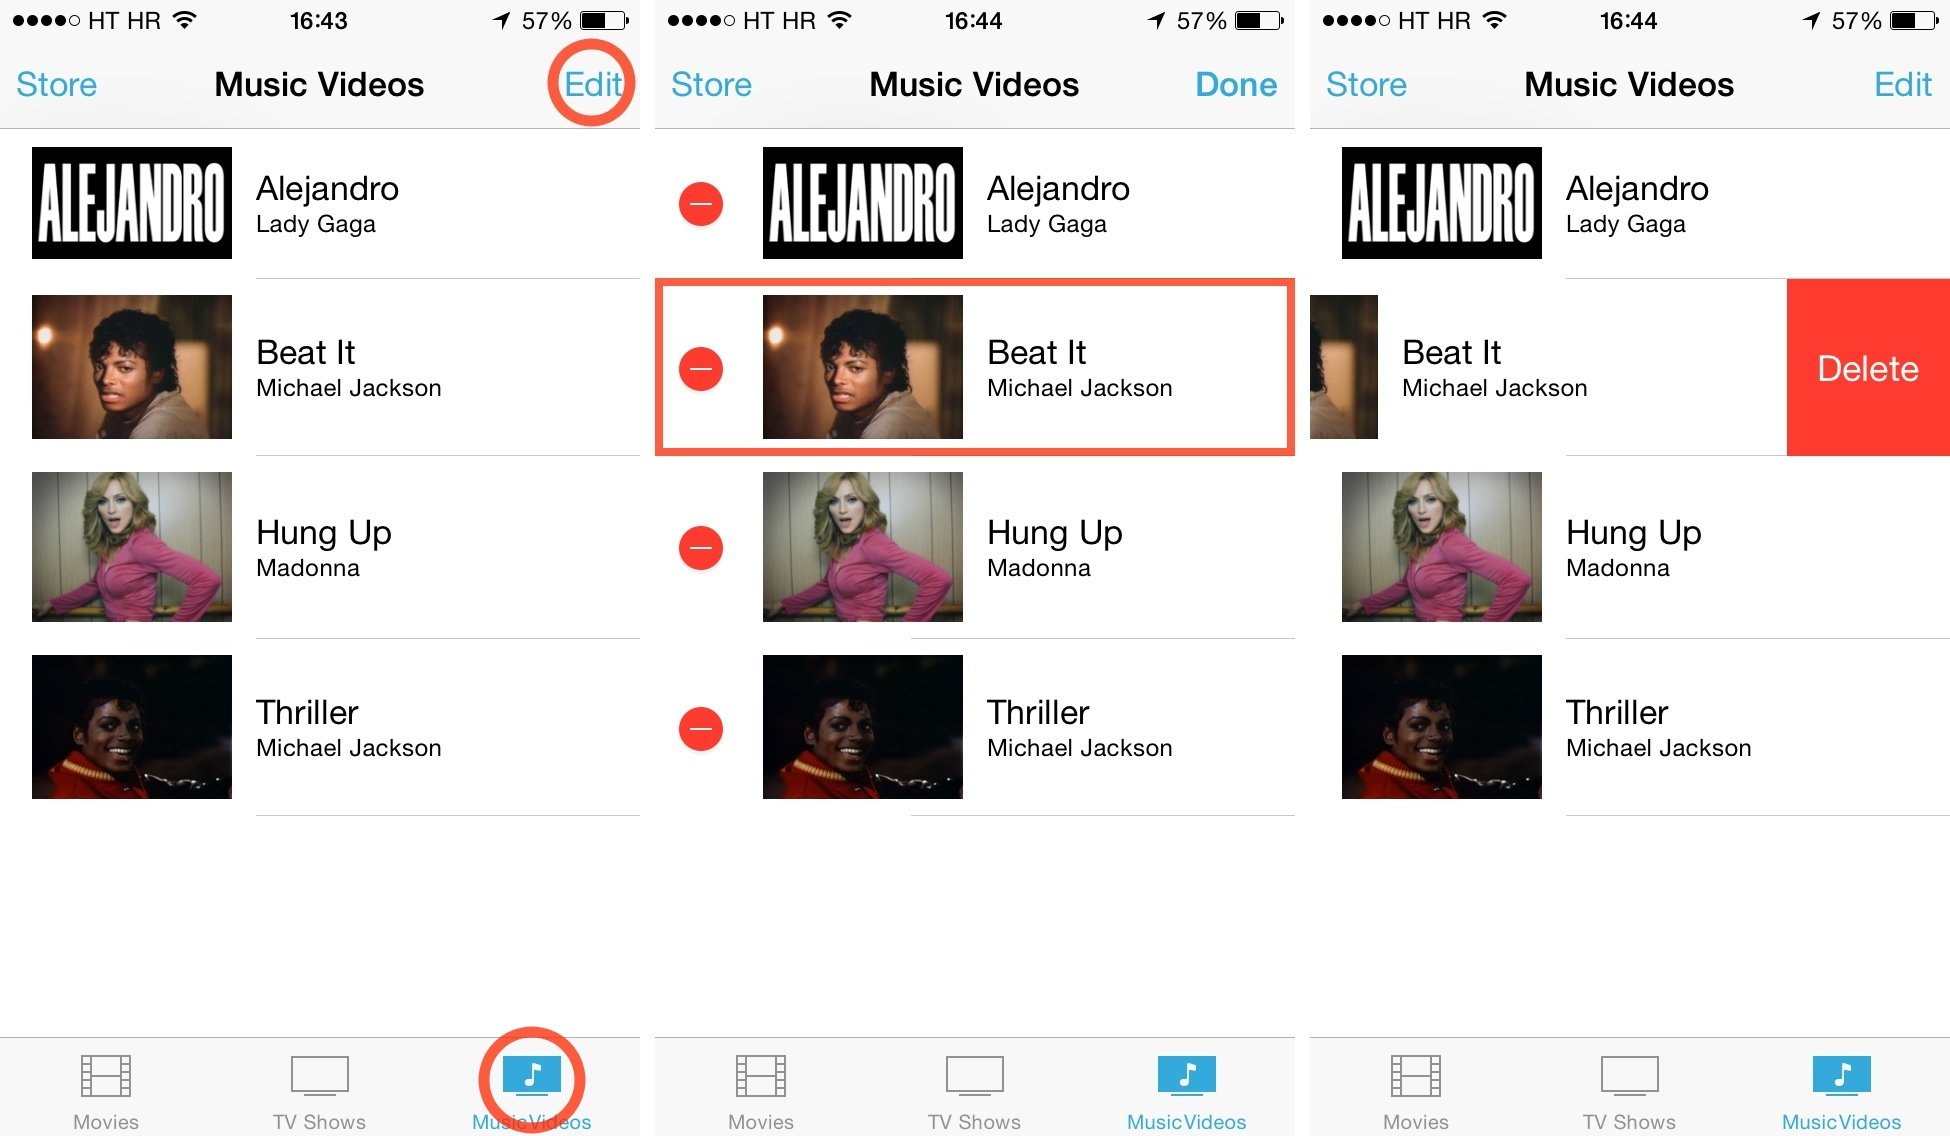 iOS 7 (how to delete Videos, Music Videos 002)